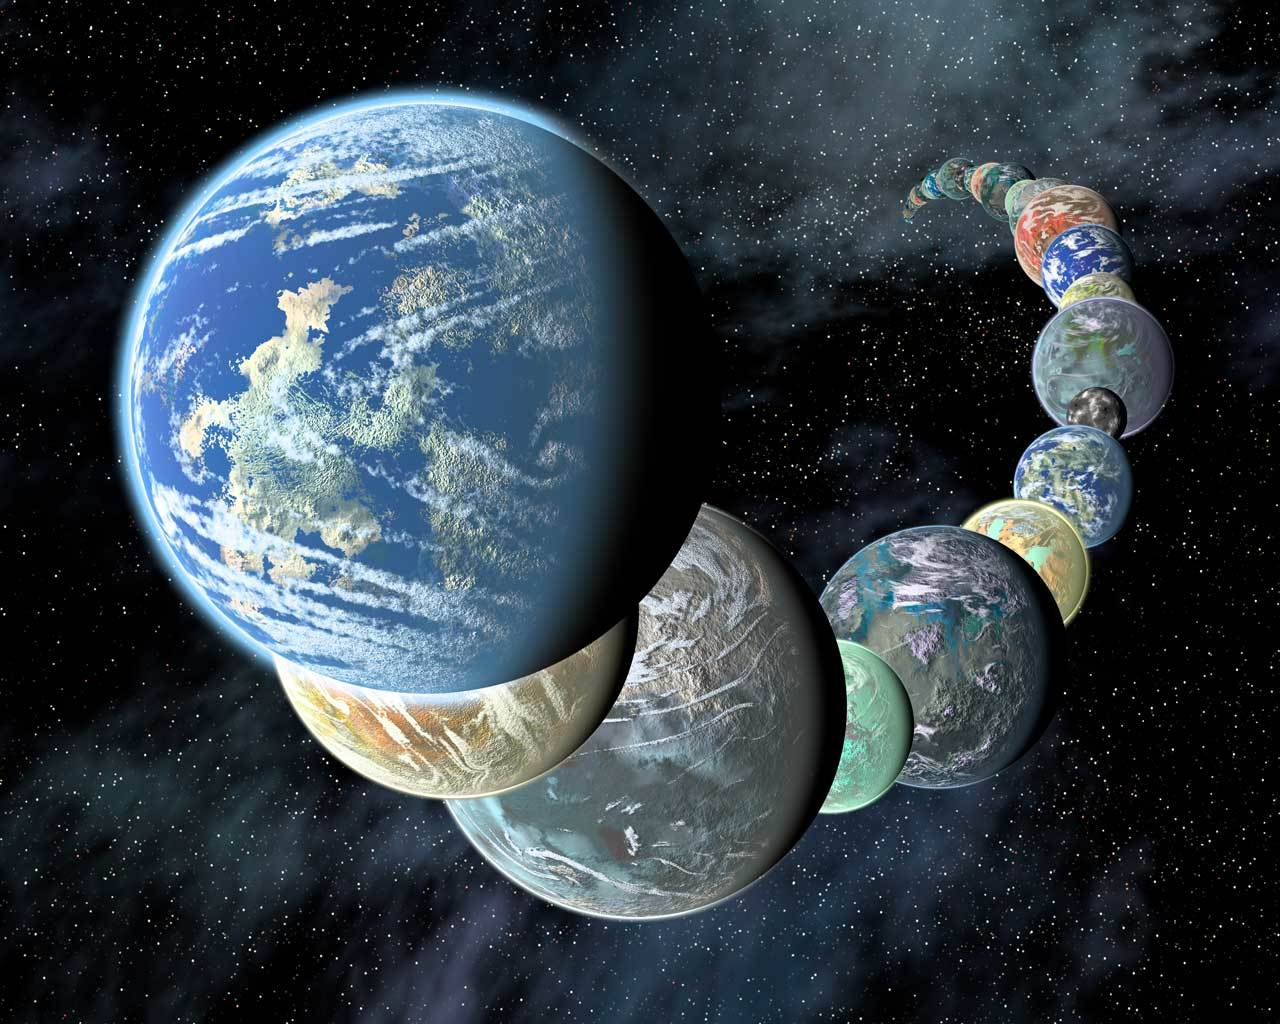 Variety of Known Exoplanets